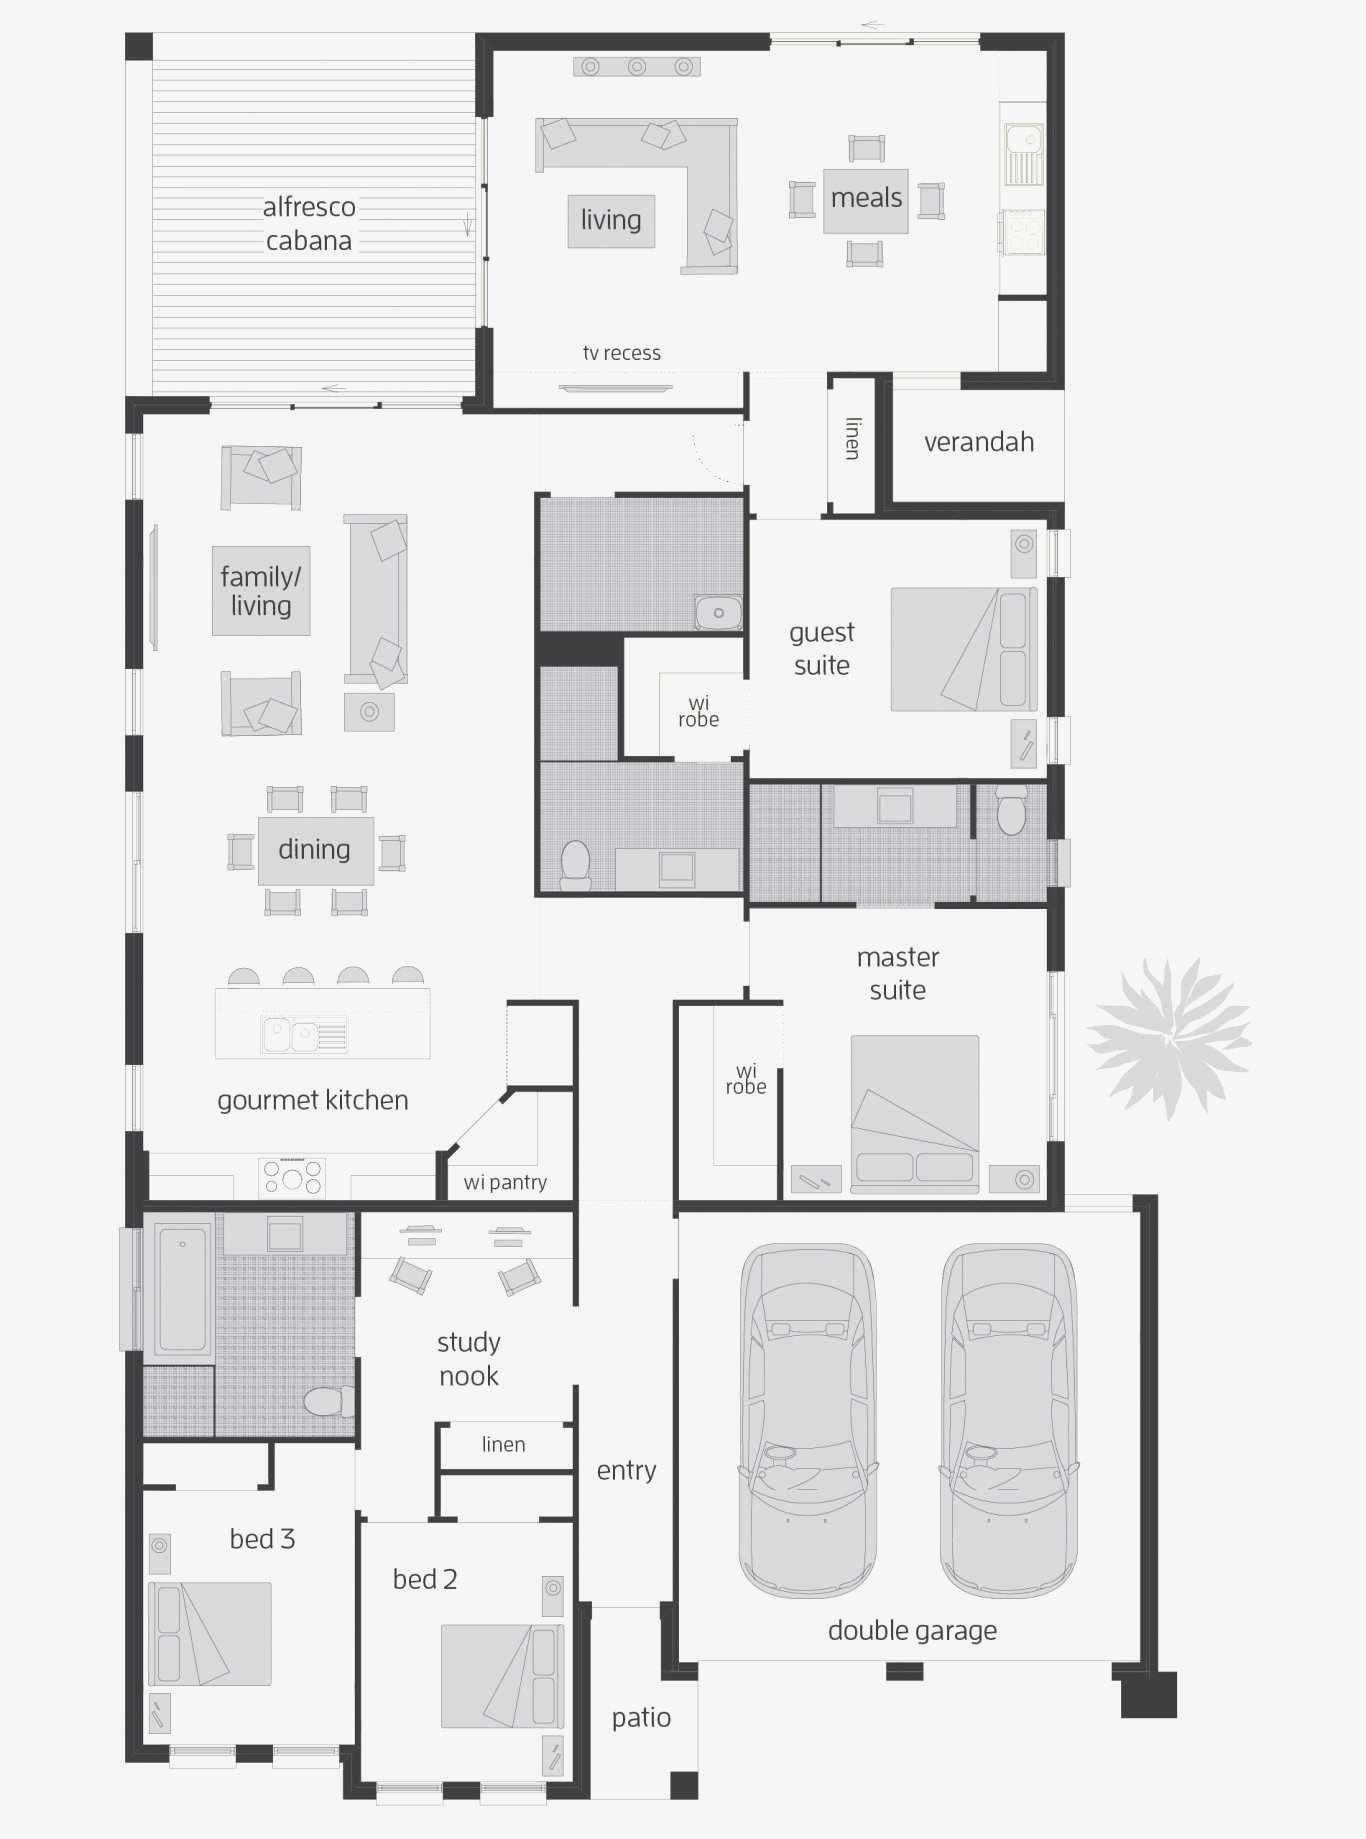 detached guest house plans inspirational house plans with inlaw suites satisfying house plan with inlaw suite house plans with detached of detached guest house plans